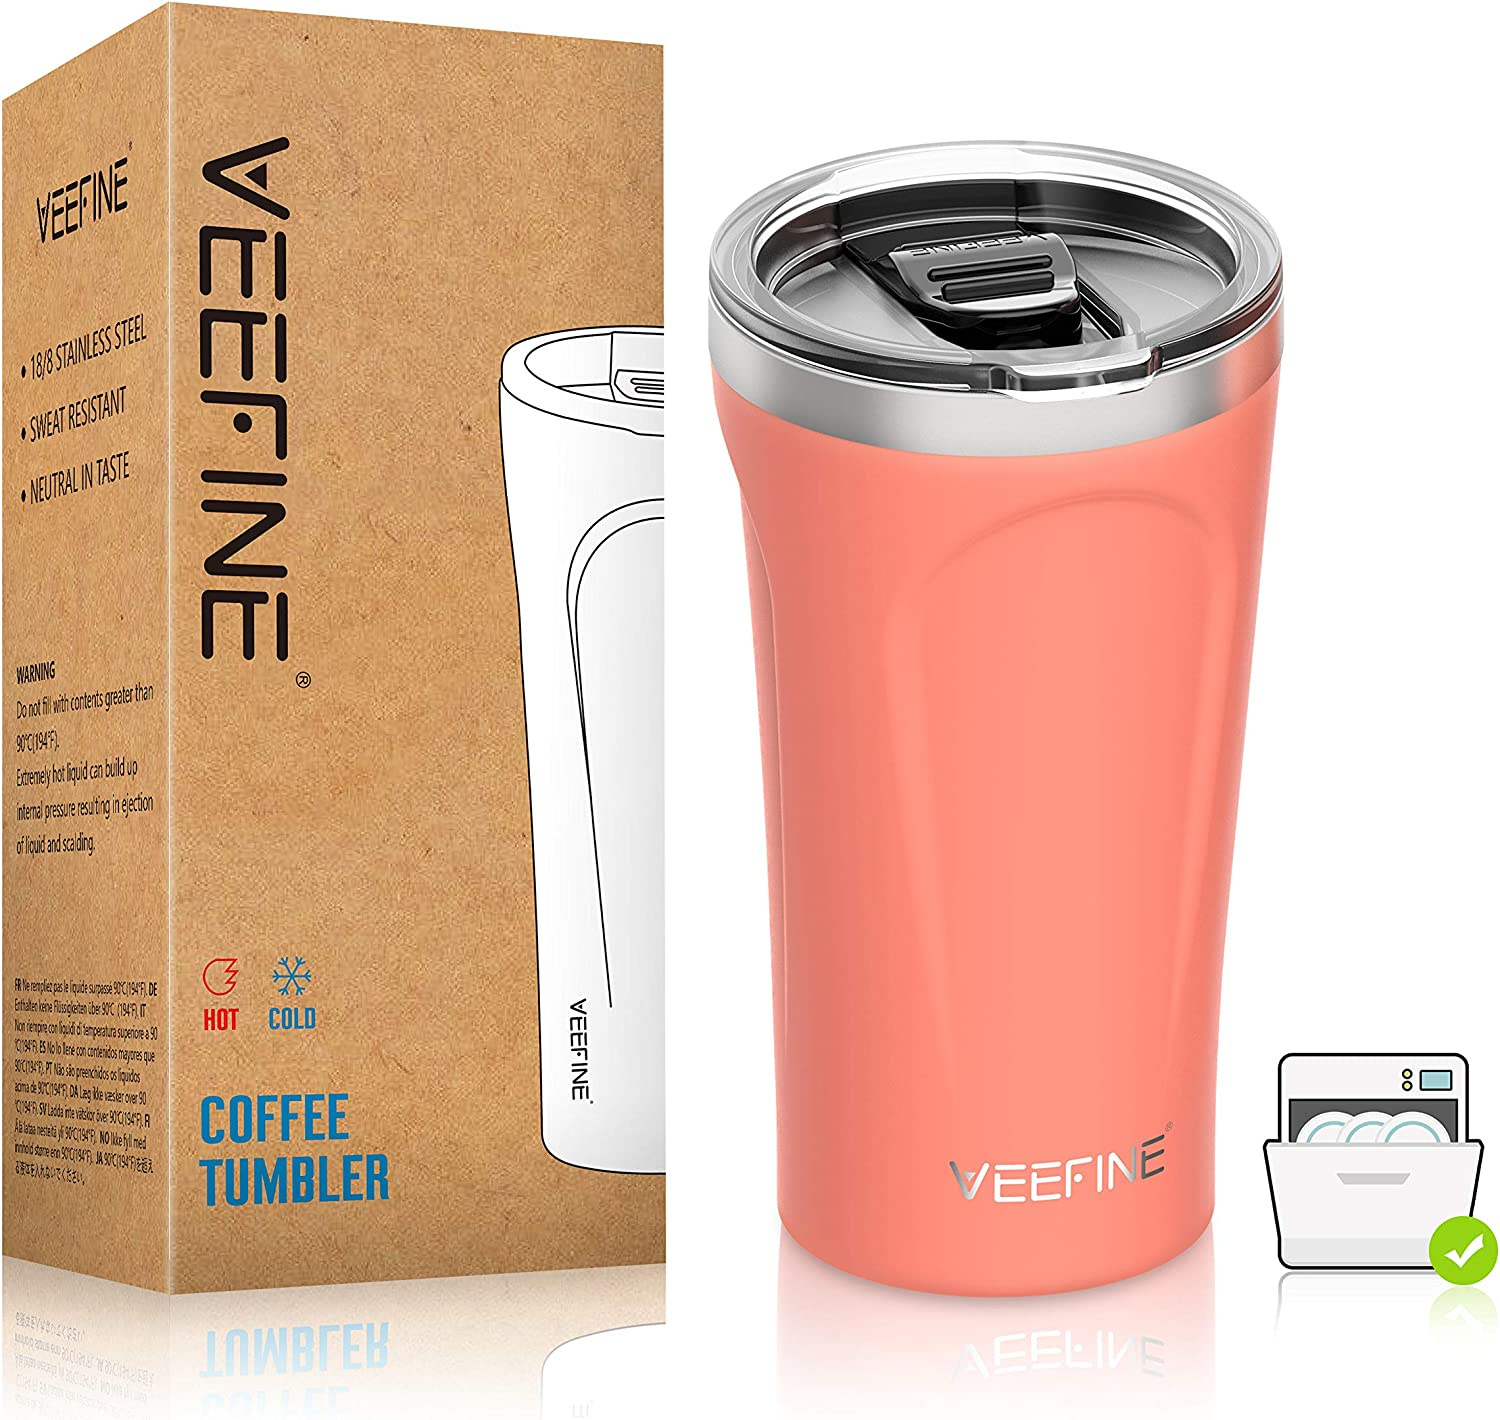 VeeFine Tumbler 16oz 18/8 Stainless Steel Tumbler with Lid Dishwasher Safe Vacuum Insulated Tumblers BPA Free Keep Hot Cold Sweat Free Double Wall Travel Tumbler Cups for Coffee Tea and Hot Beverage